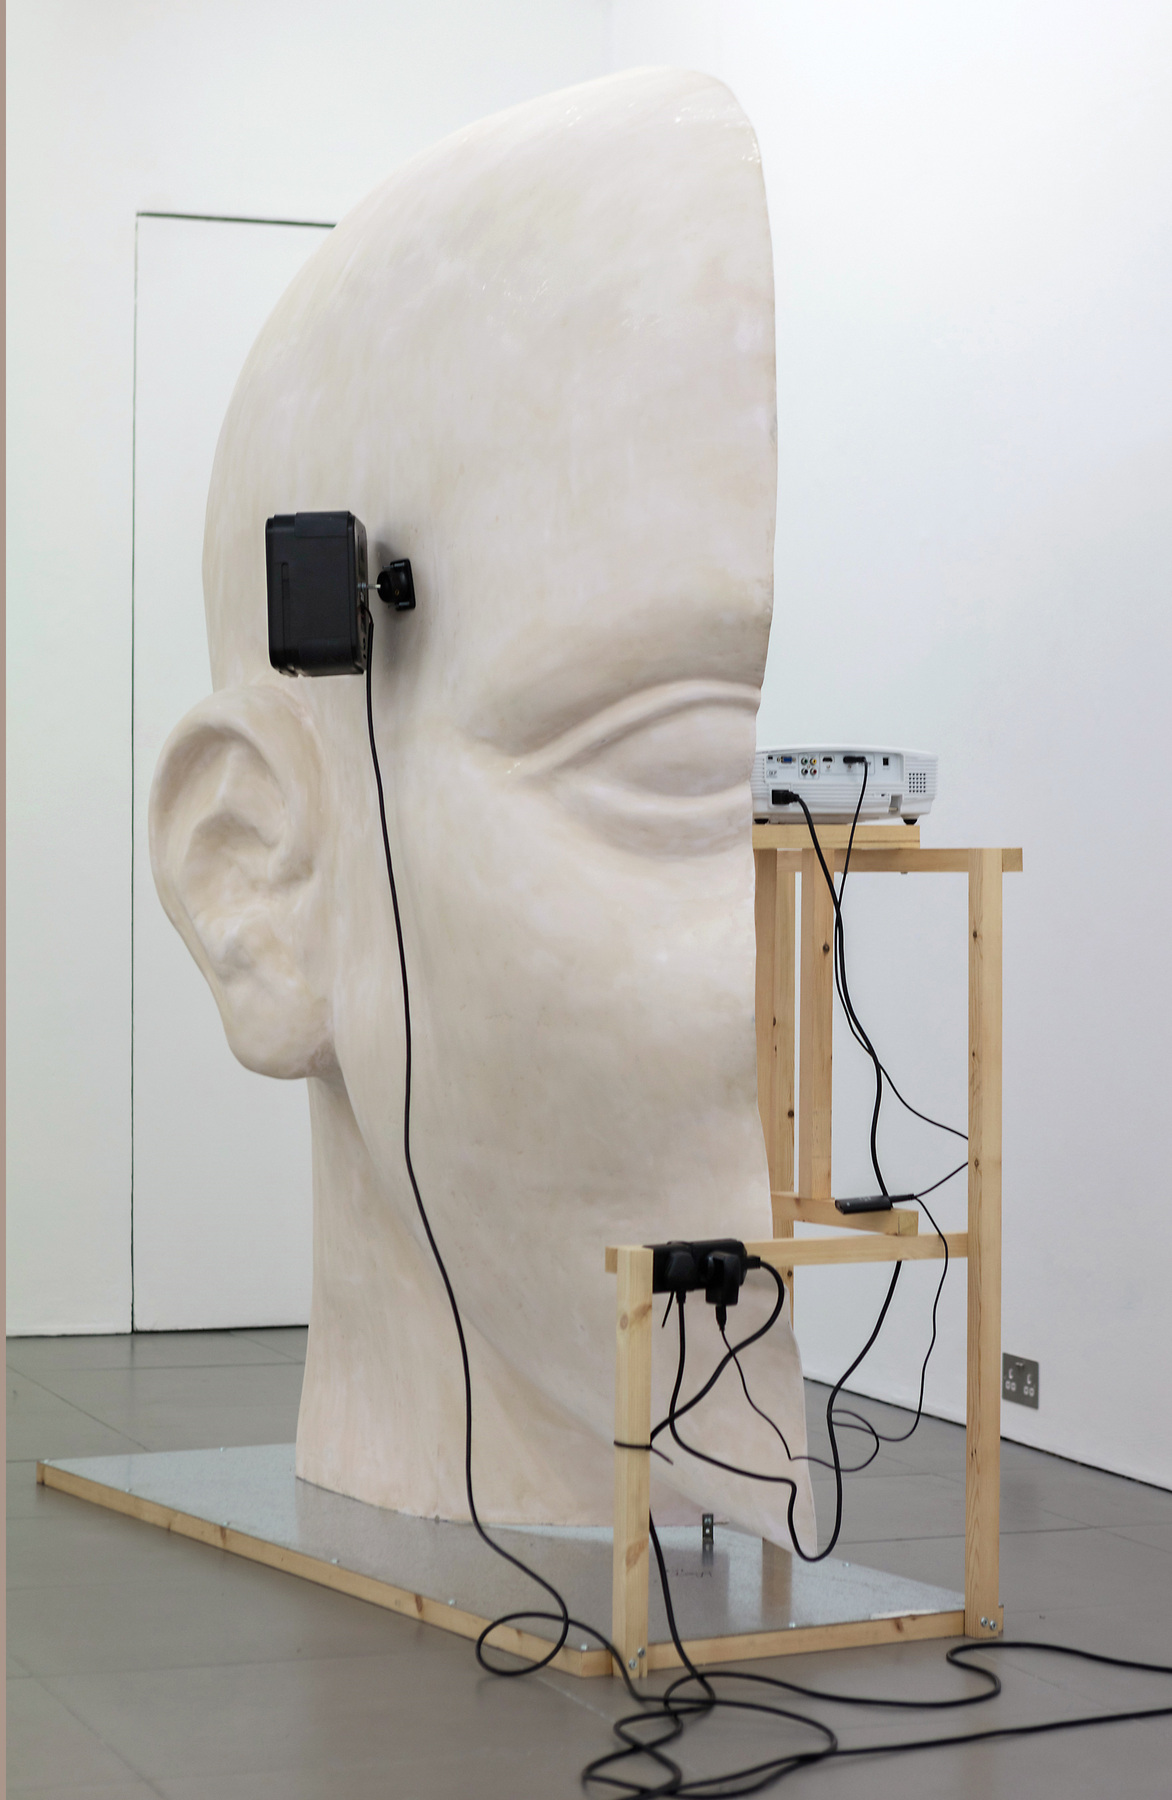 04. Anne de Vries, SUBMISSION 2015, wood, metal, fibreglass resin, audio, video